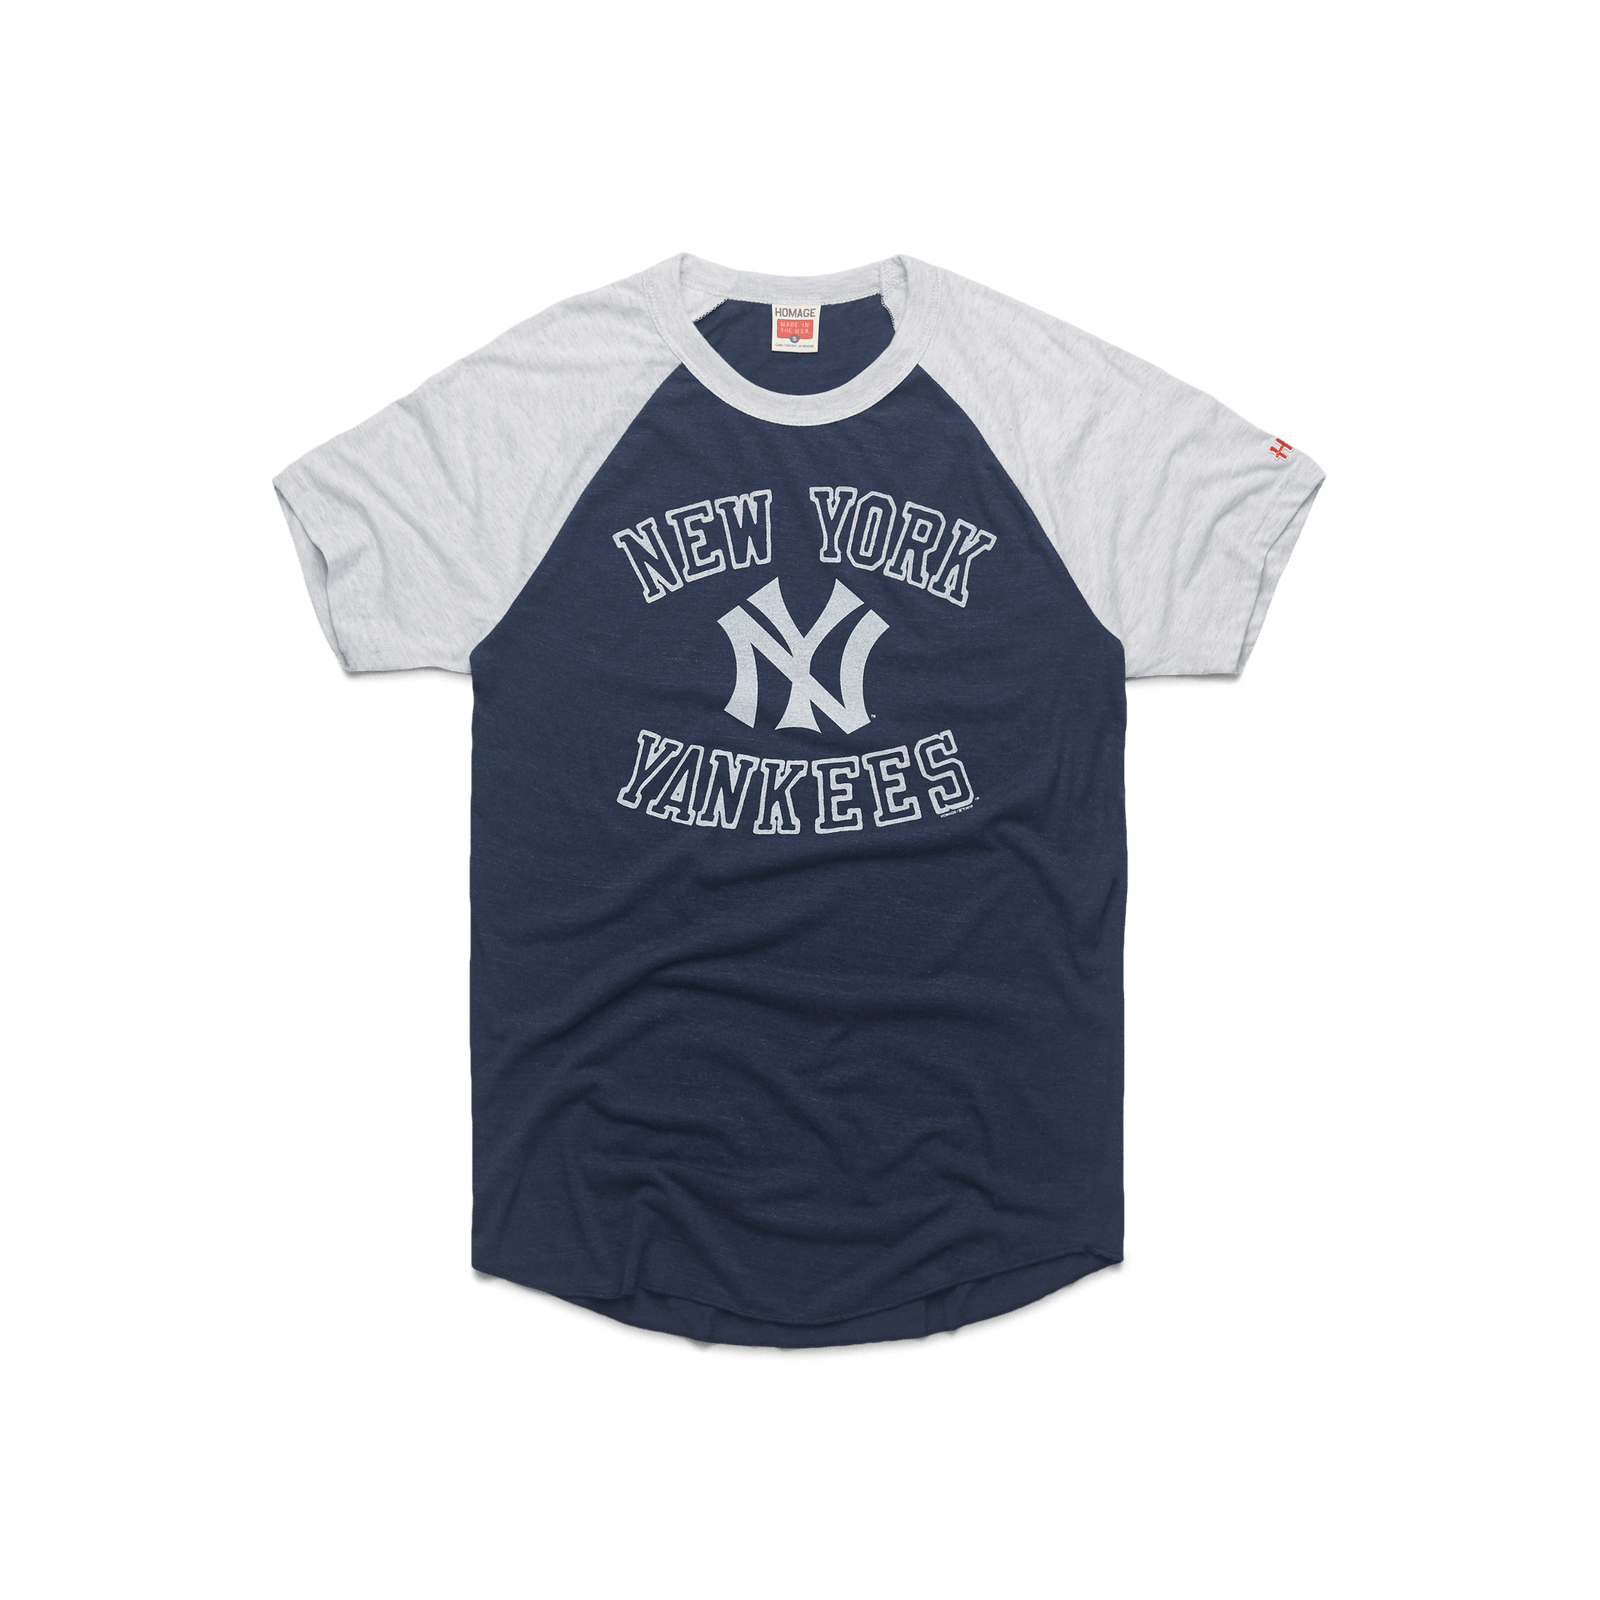 Block New York Yankees Baseball T-Shirt Retro NYC MLB Tee Shirt – HOMAGE 2a009be57d2